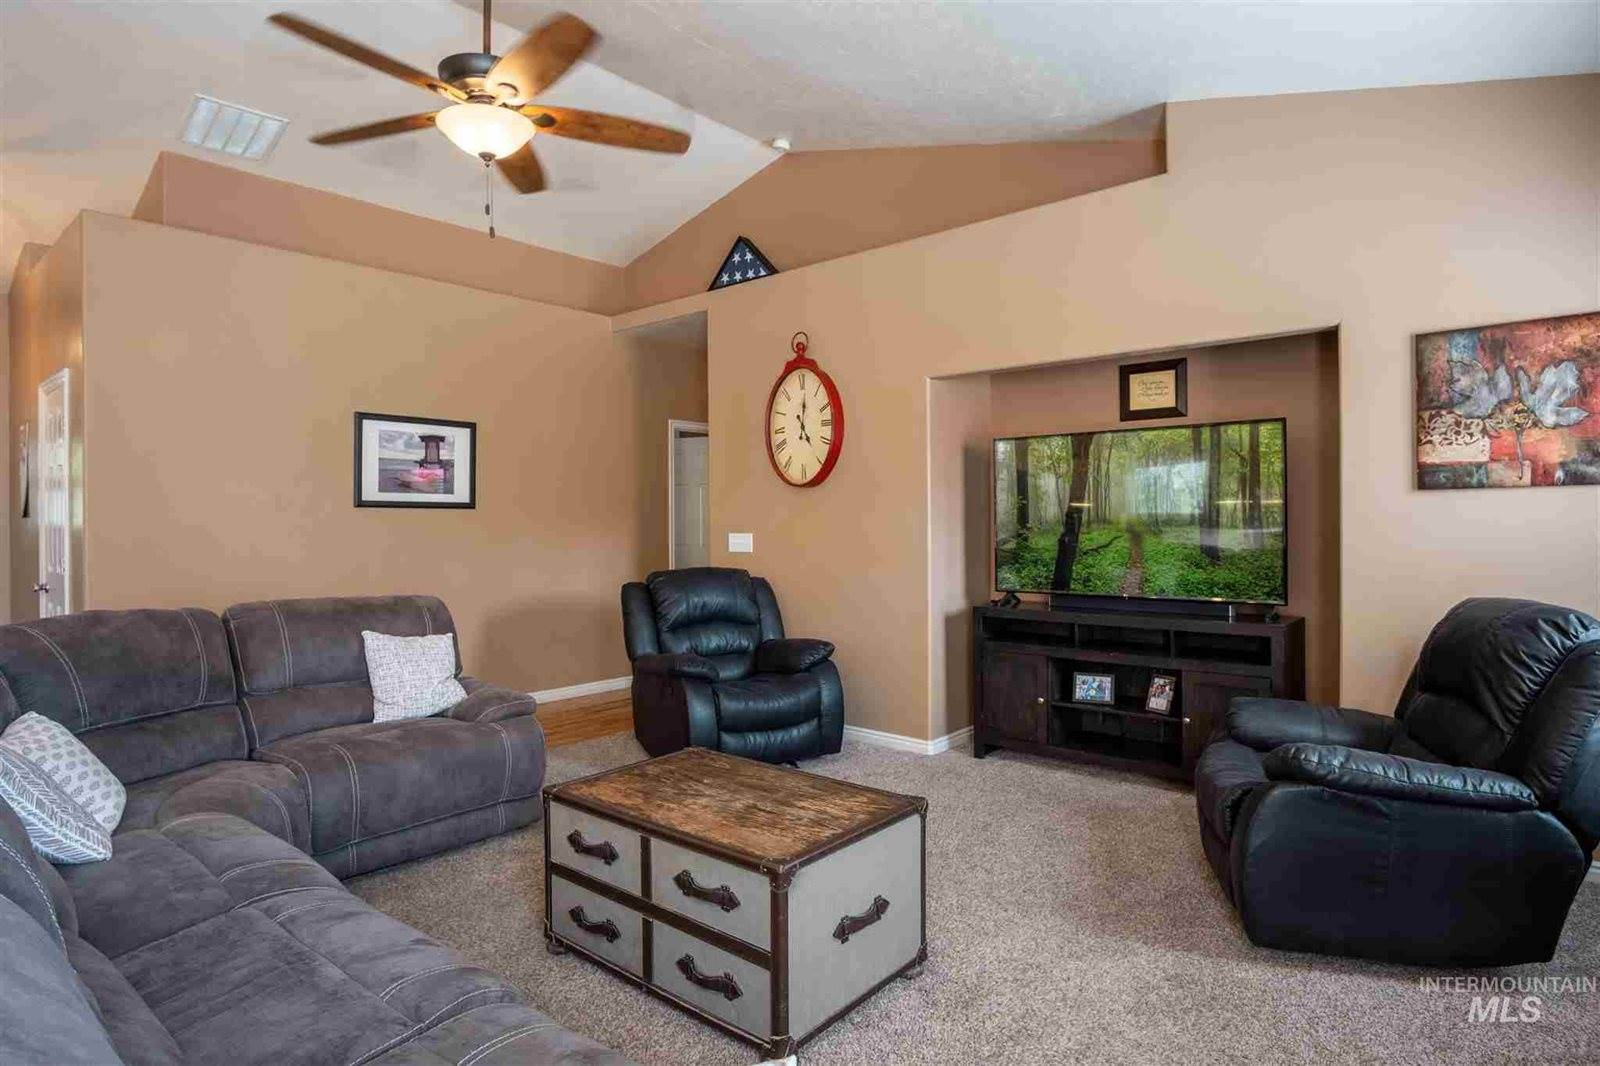 1829 South Goldsmith Ave, Meridian, ID 83642